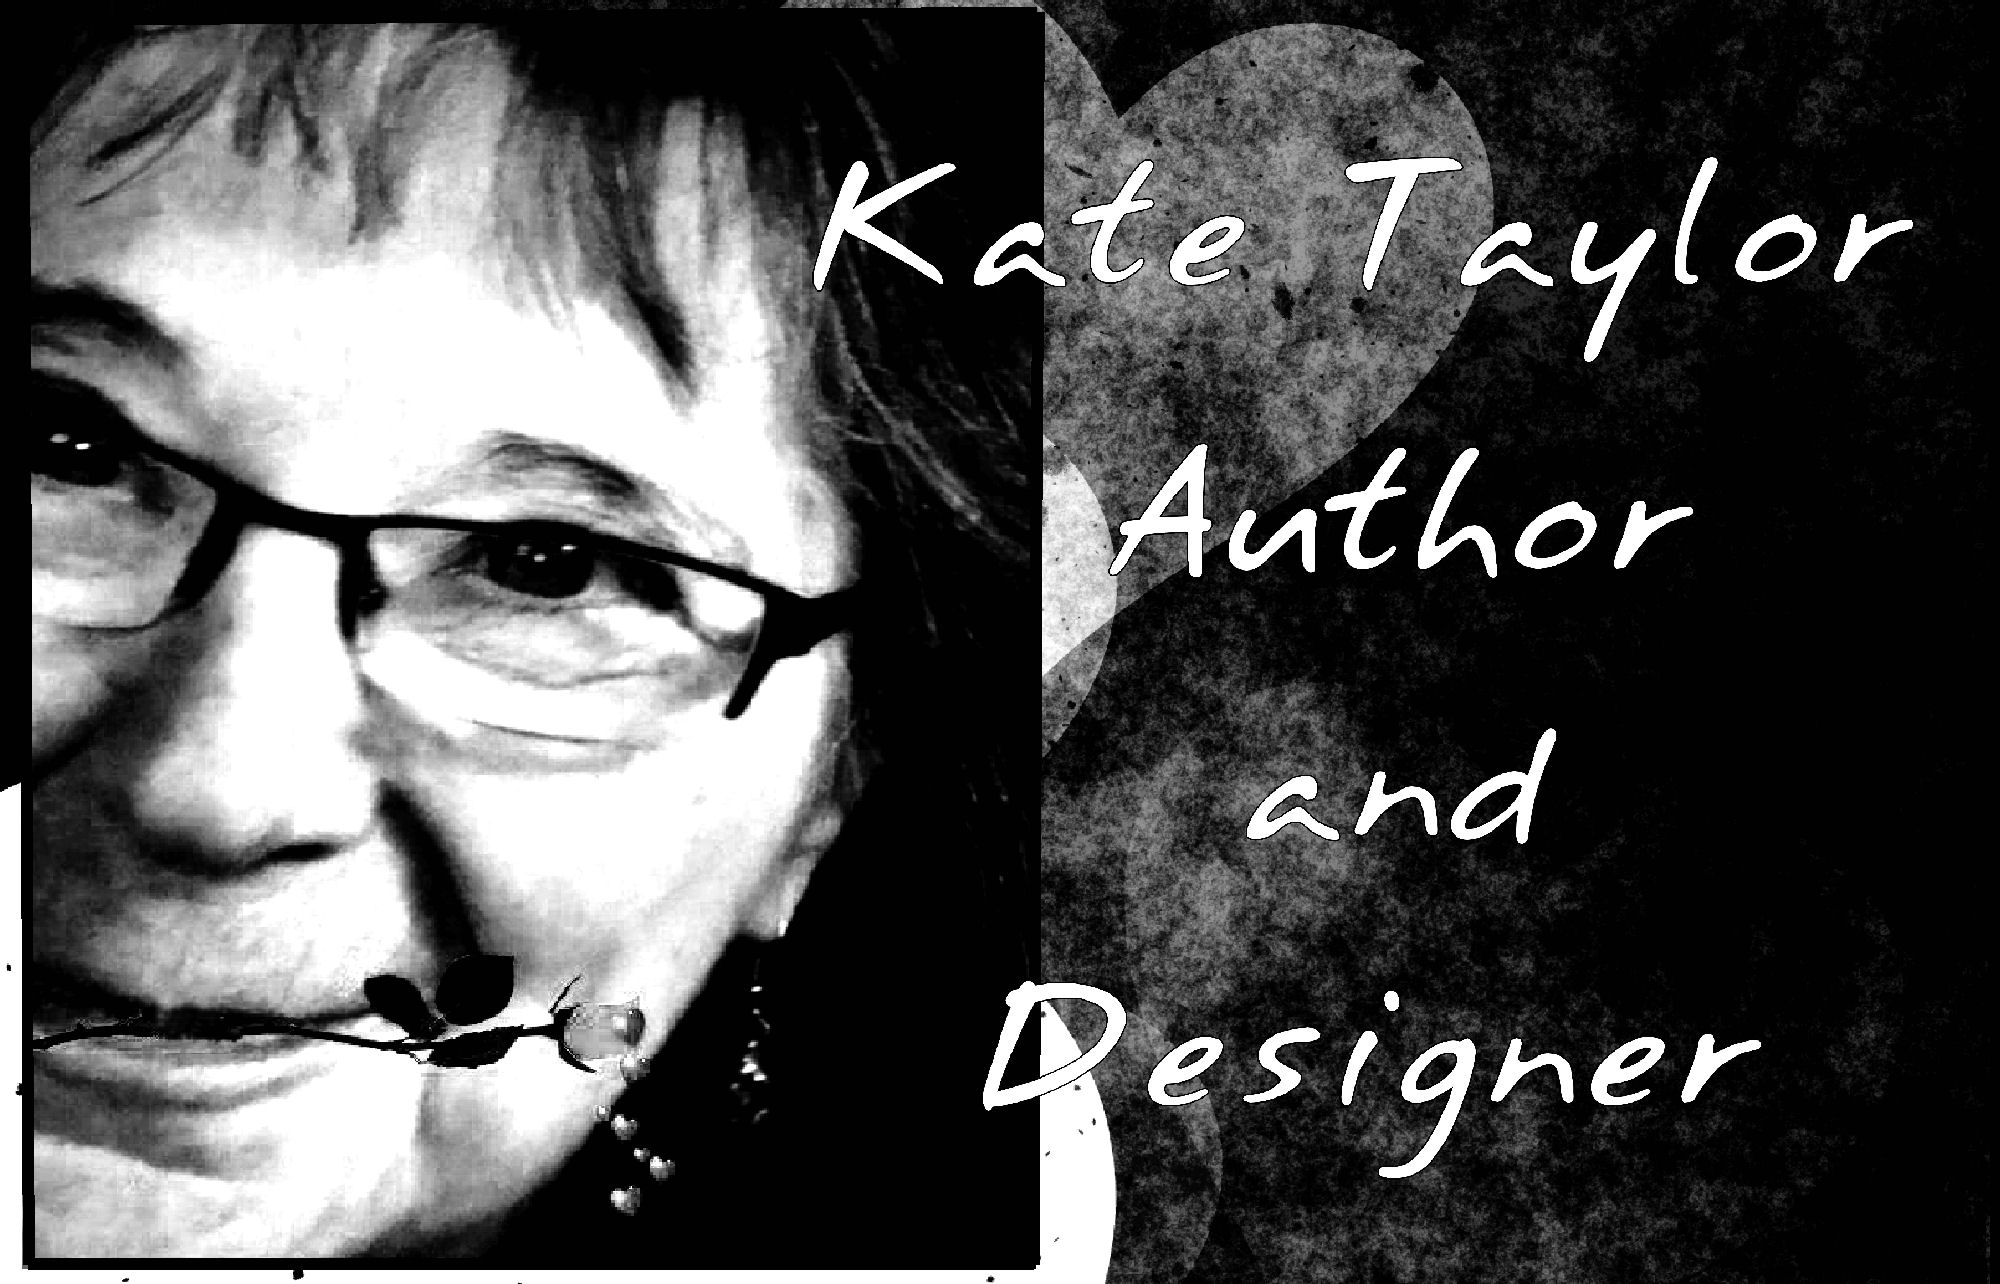 photograph of author Kate Taylor